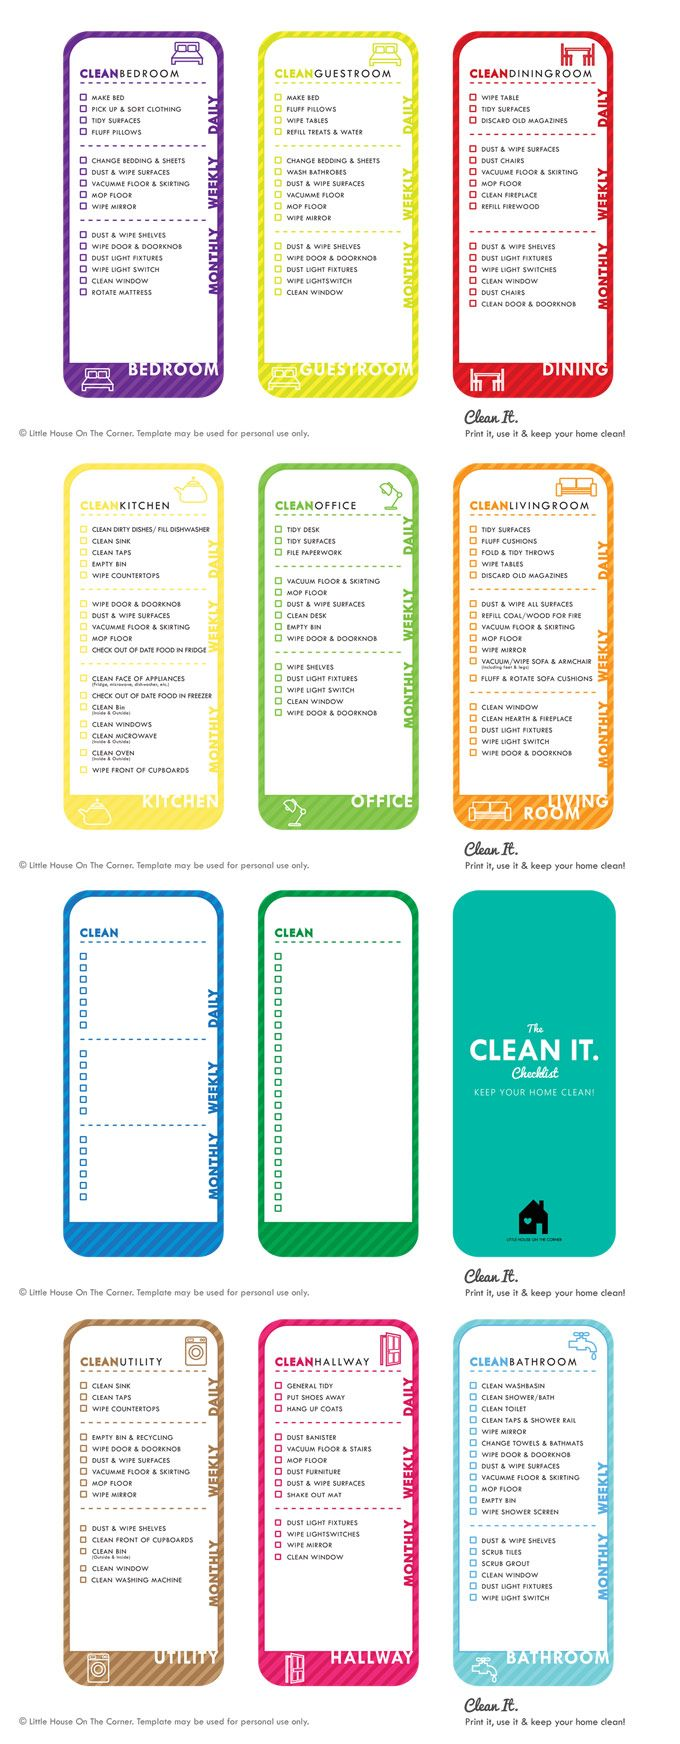 House Cleaning Checklist - Free Printable